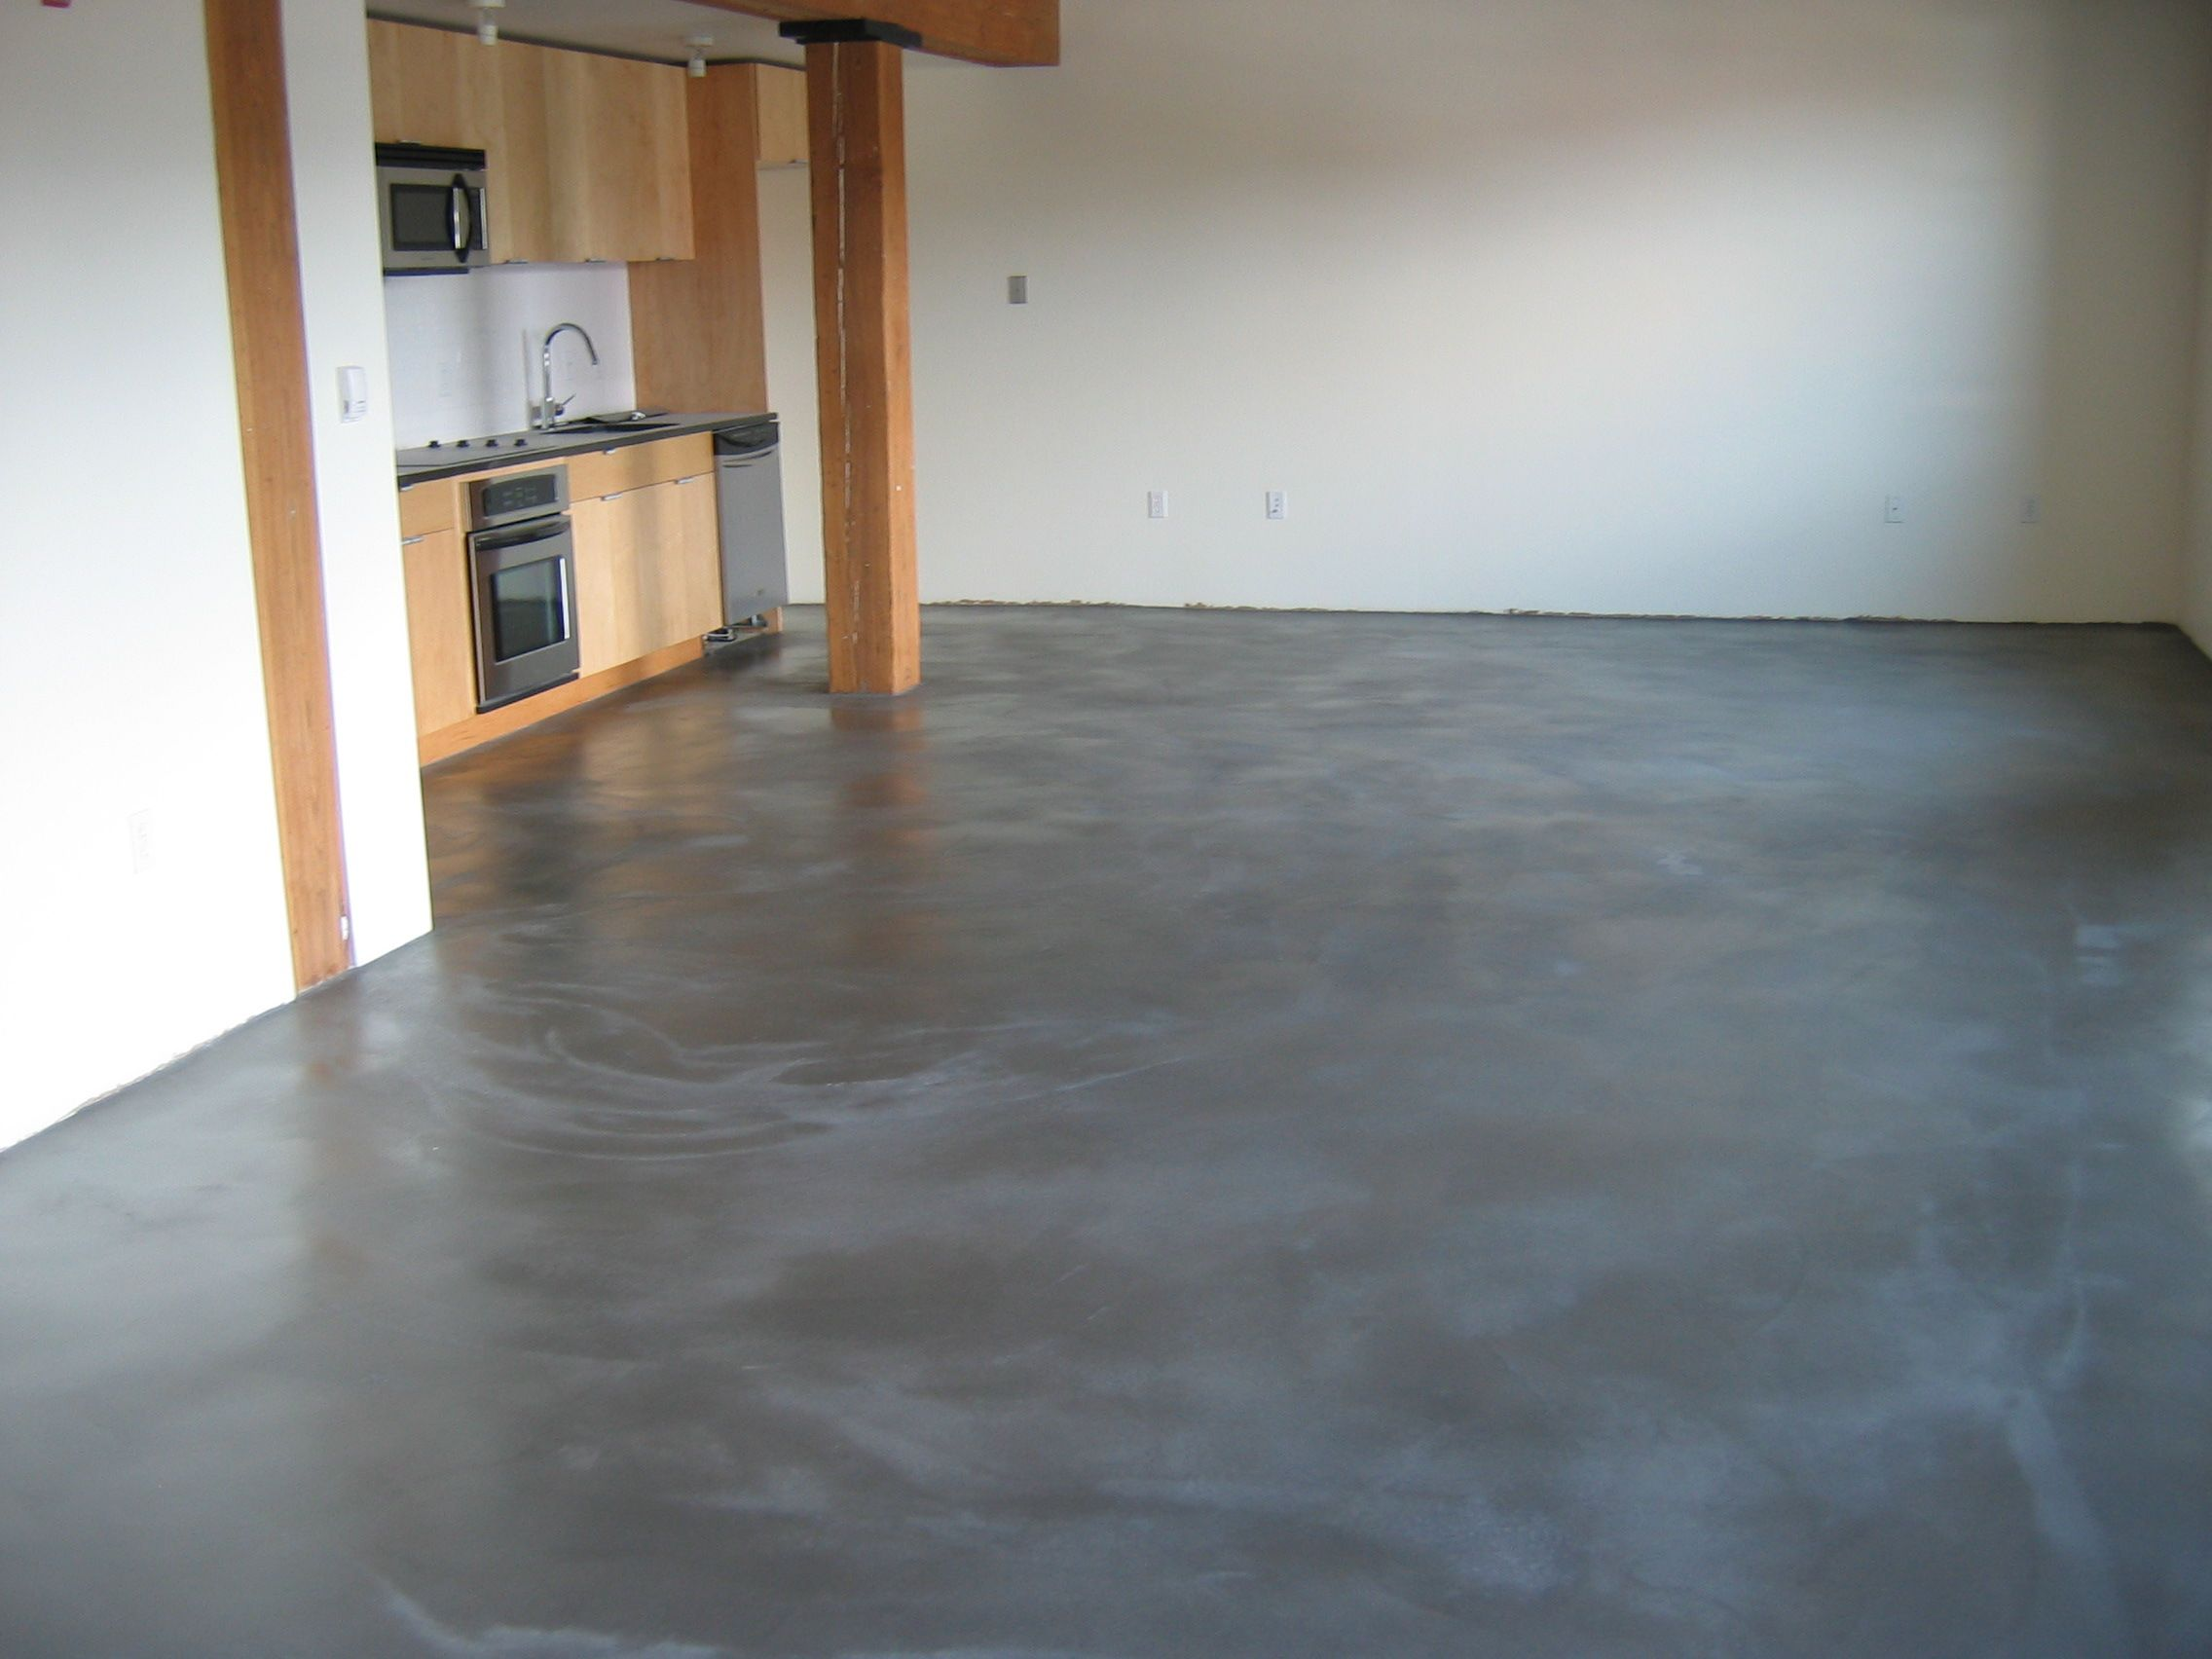 Polished Concrete Kitchen Floor Poured Concrete Floors Concrete Polishing Concrete Floor